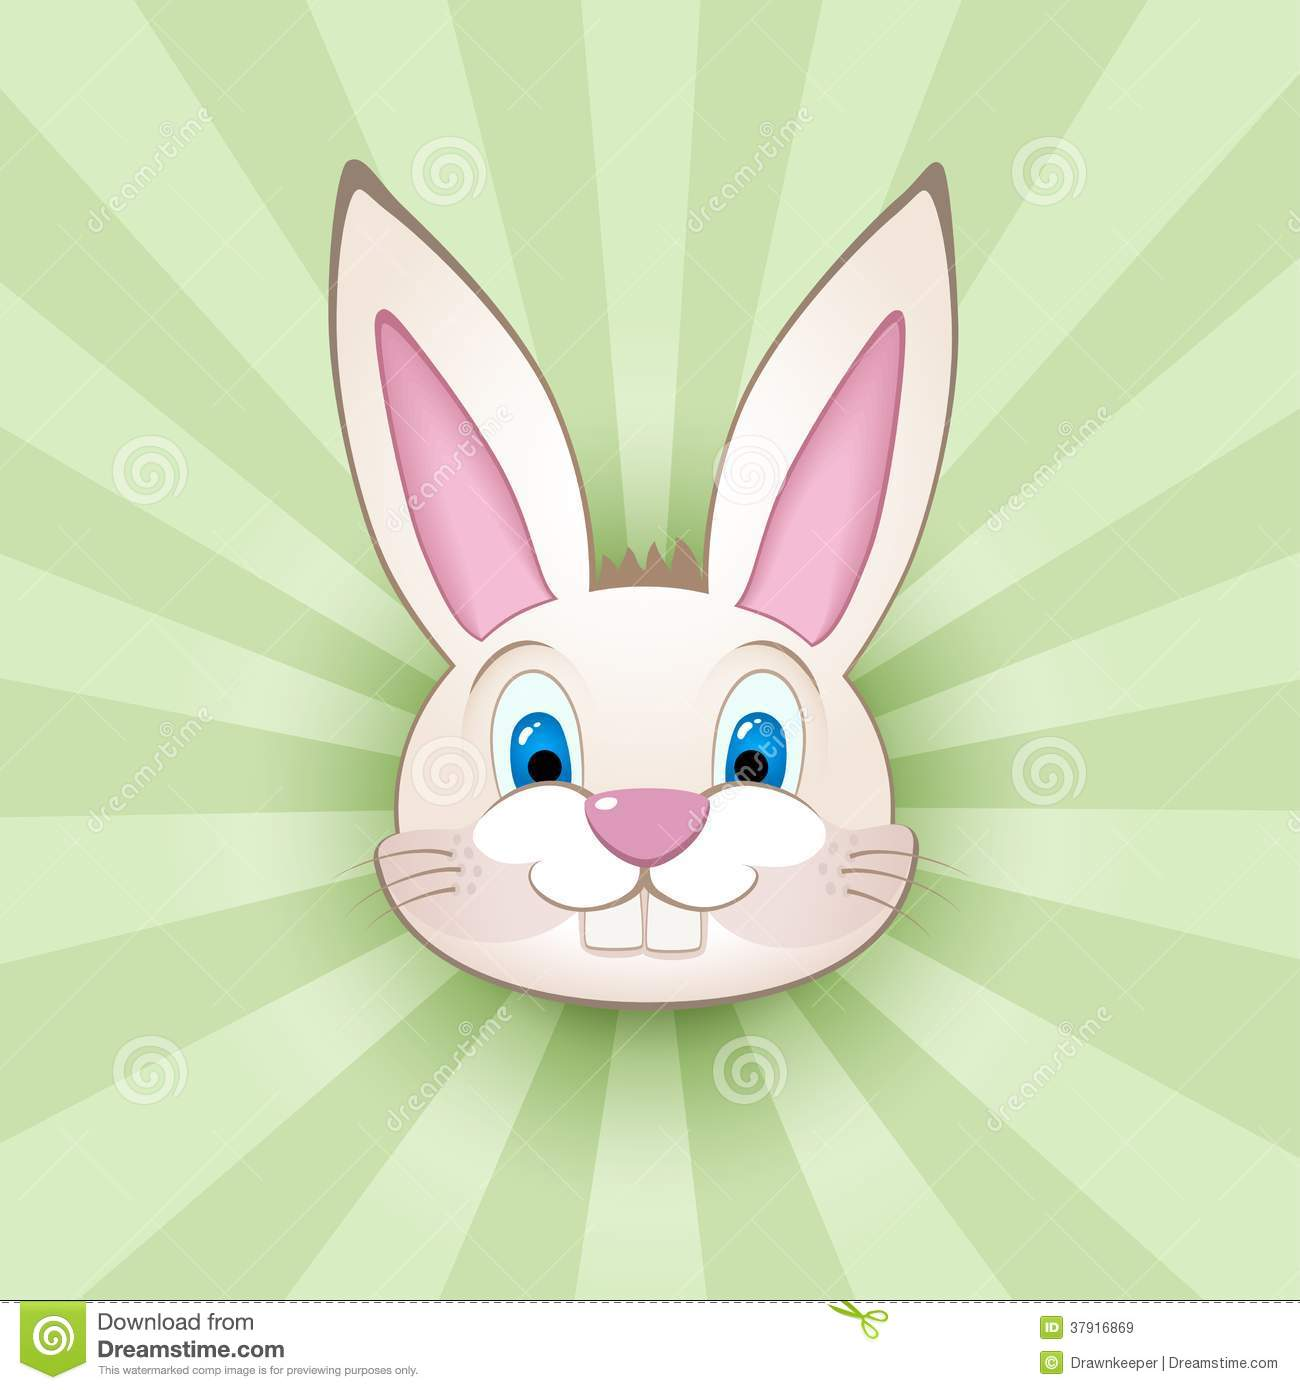 Cartoon Bunny Head On Green Royalty Free Stock Images - Image ...